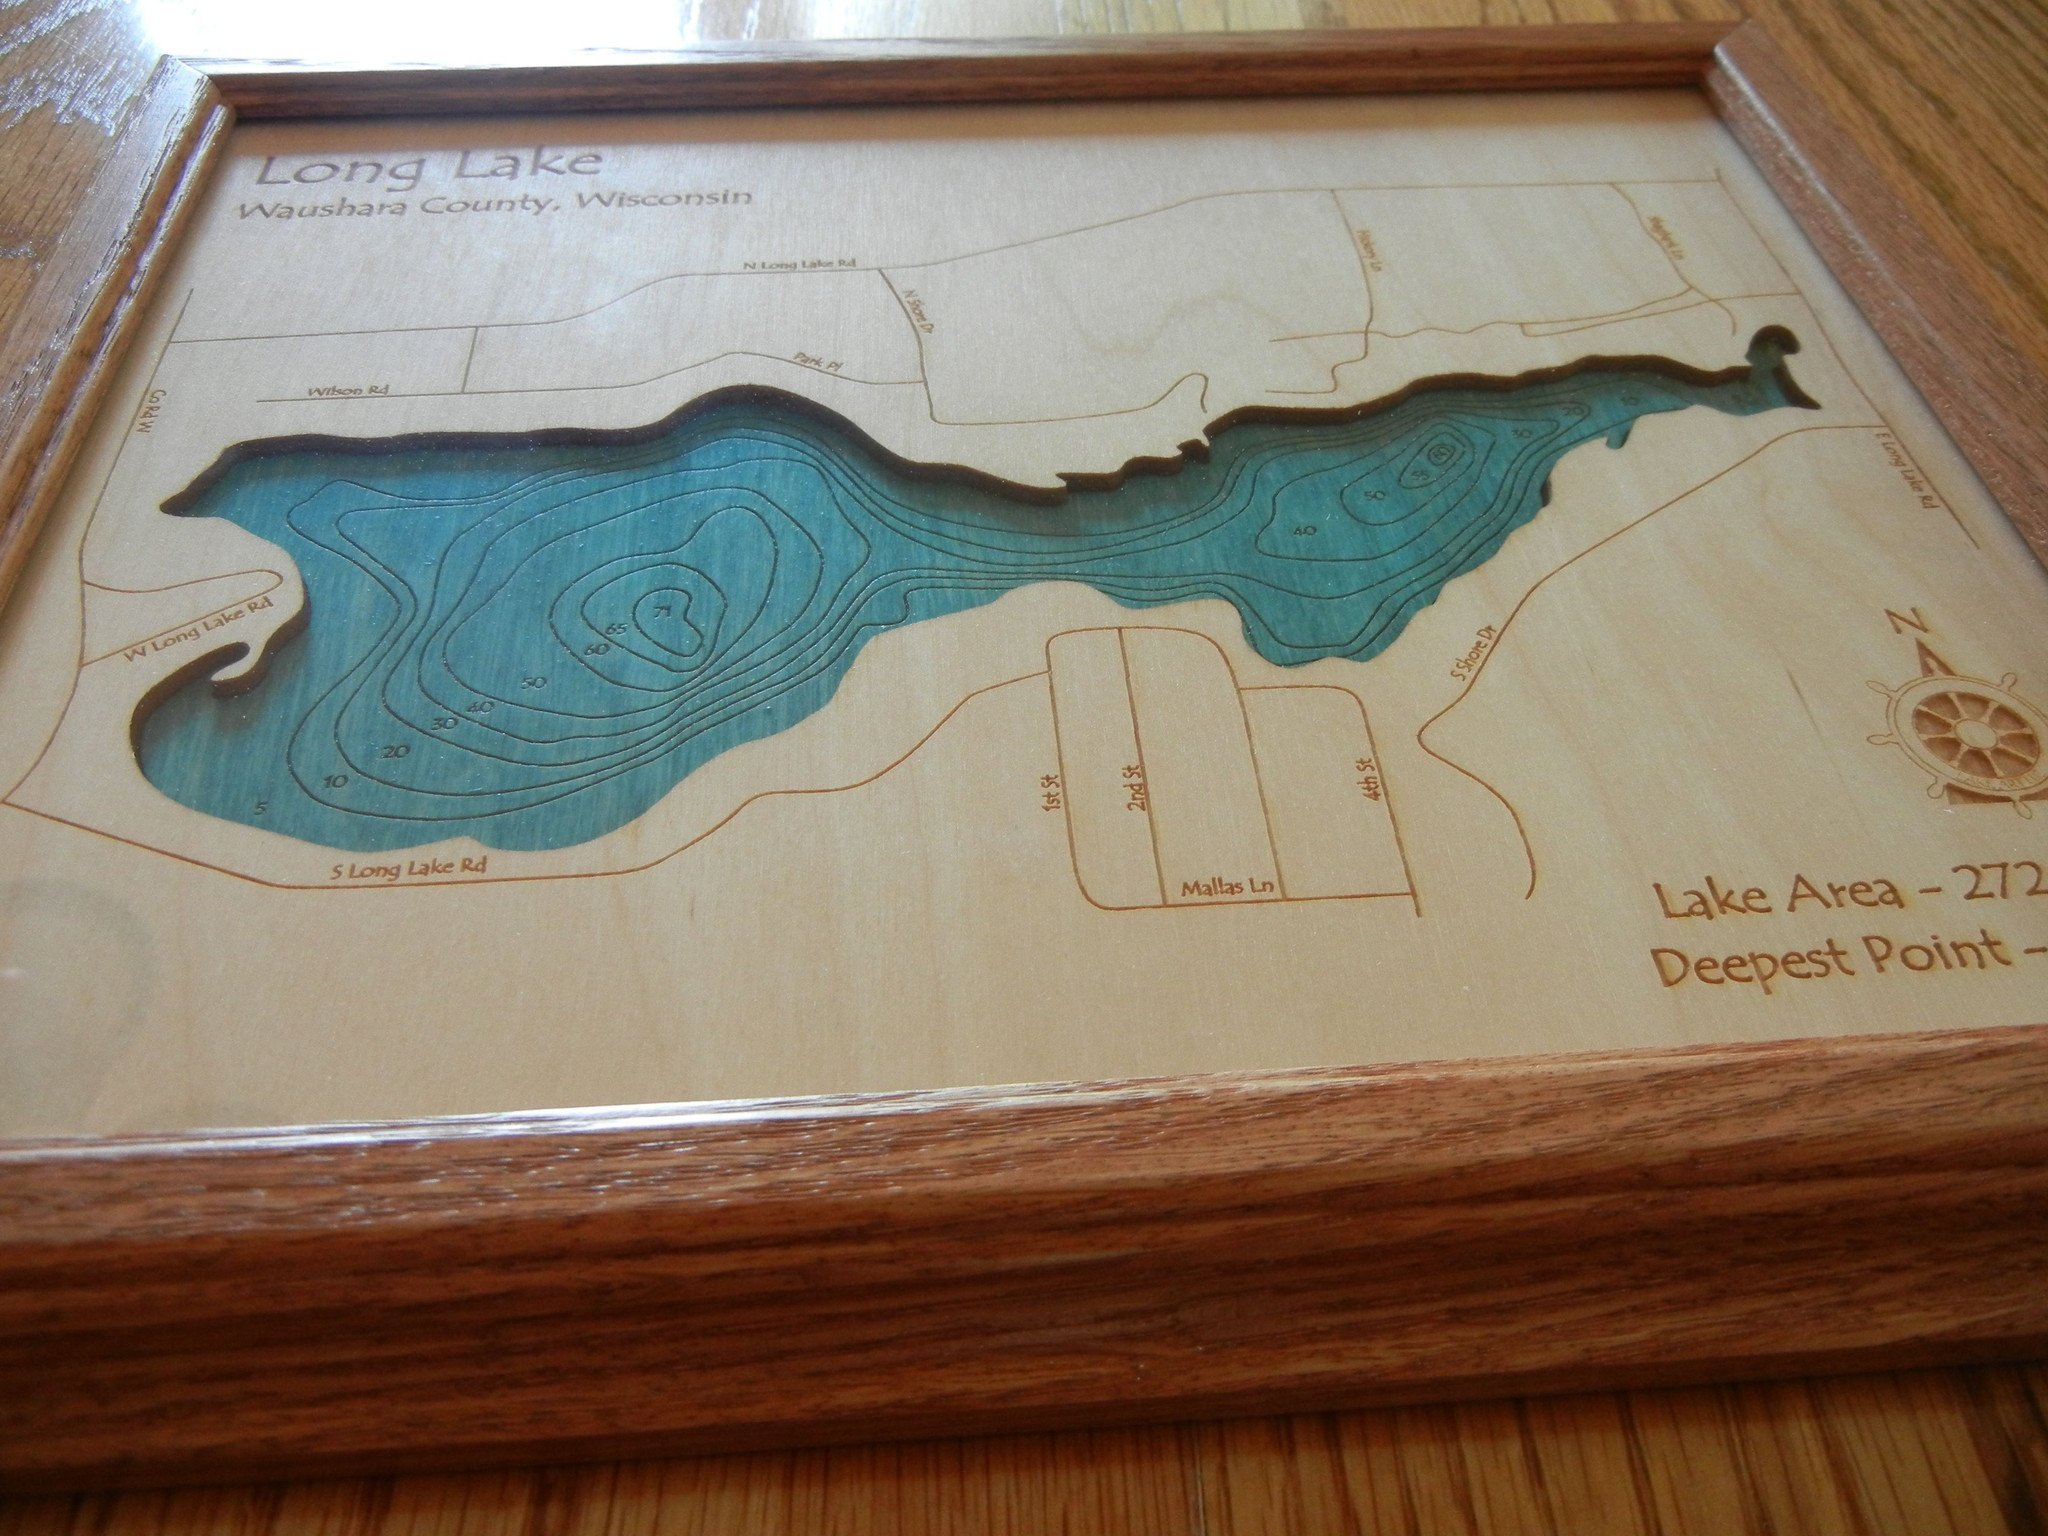 Lake Hamilton in Garland, AR - 2D Map 8 x 10 IN - Laser carved wood nautical chart and topographic depth map. by Long Lake Lifestyle (Image #4)